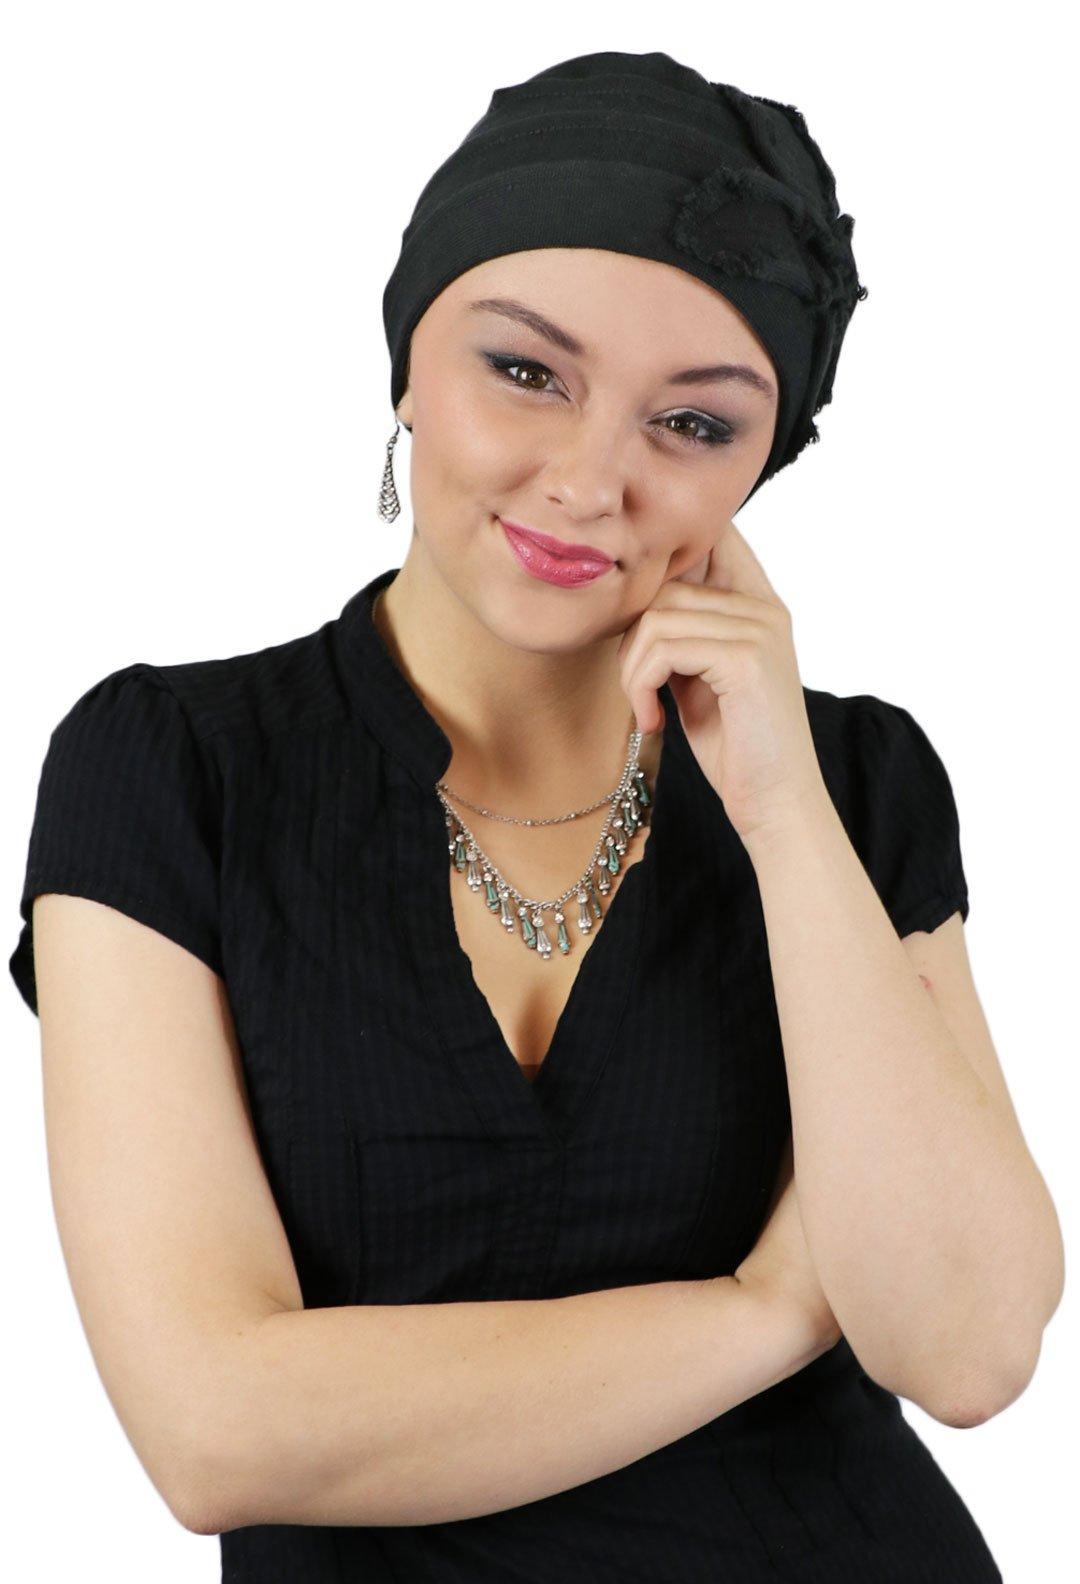 Hats For Cancer Patients Women Chemo Headwear Head Coverings Butterfly Beanie Parkhurst (BLACK)